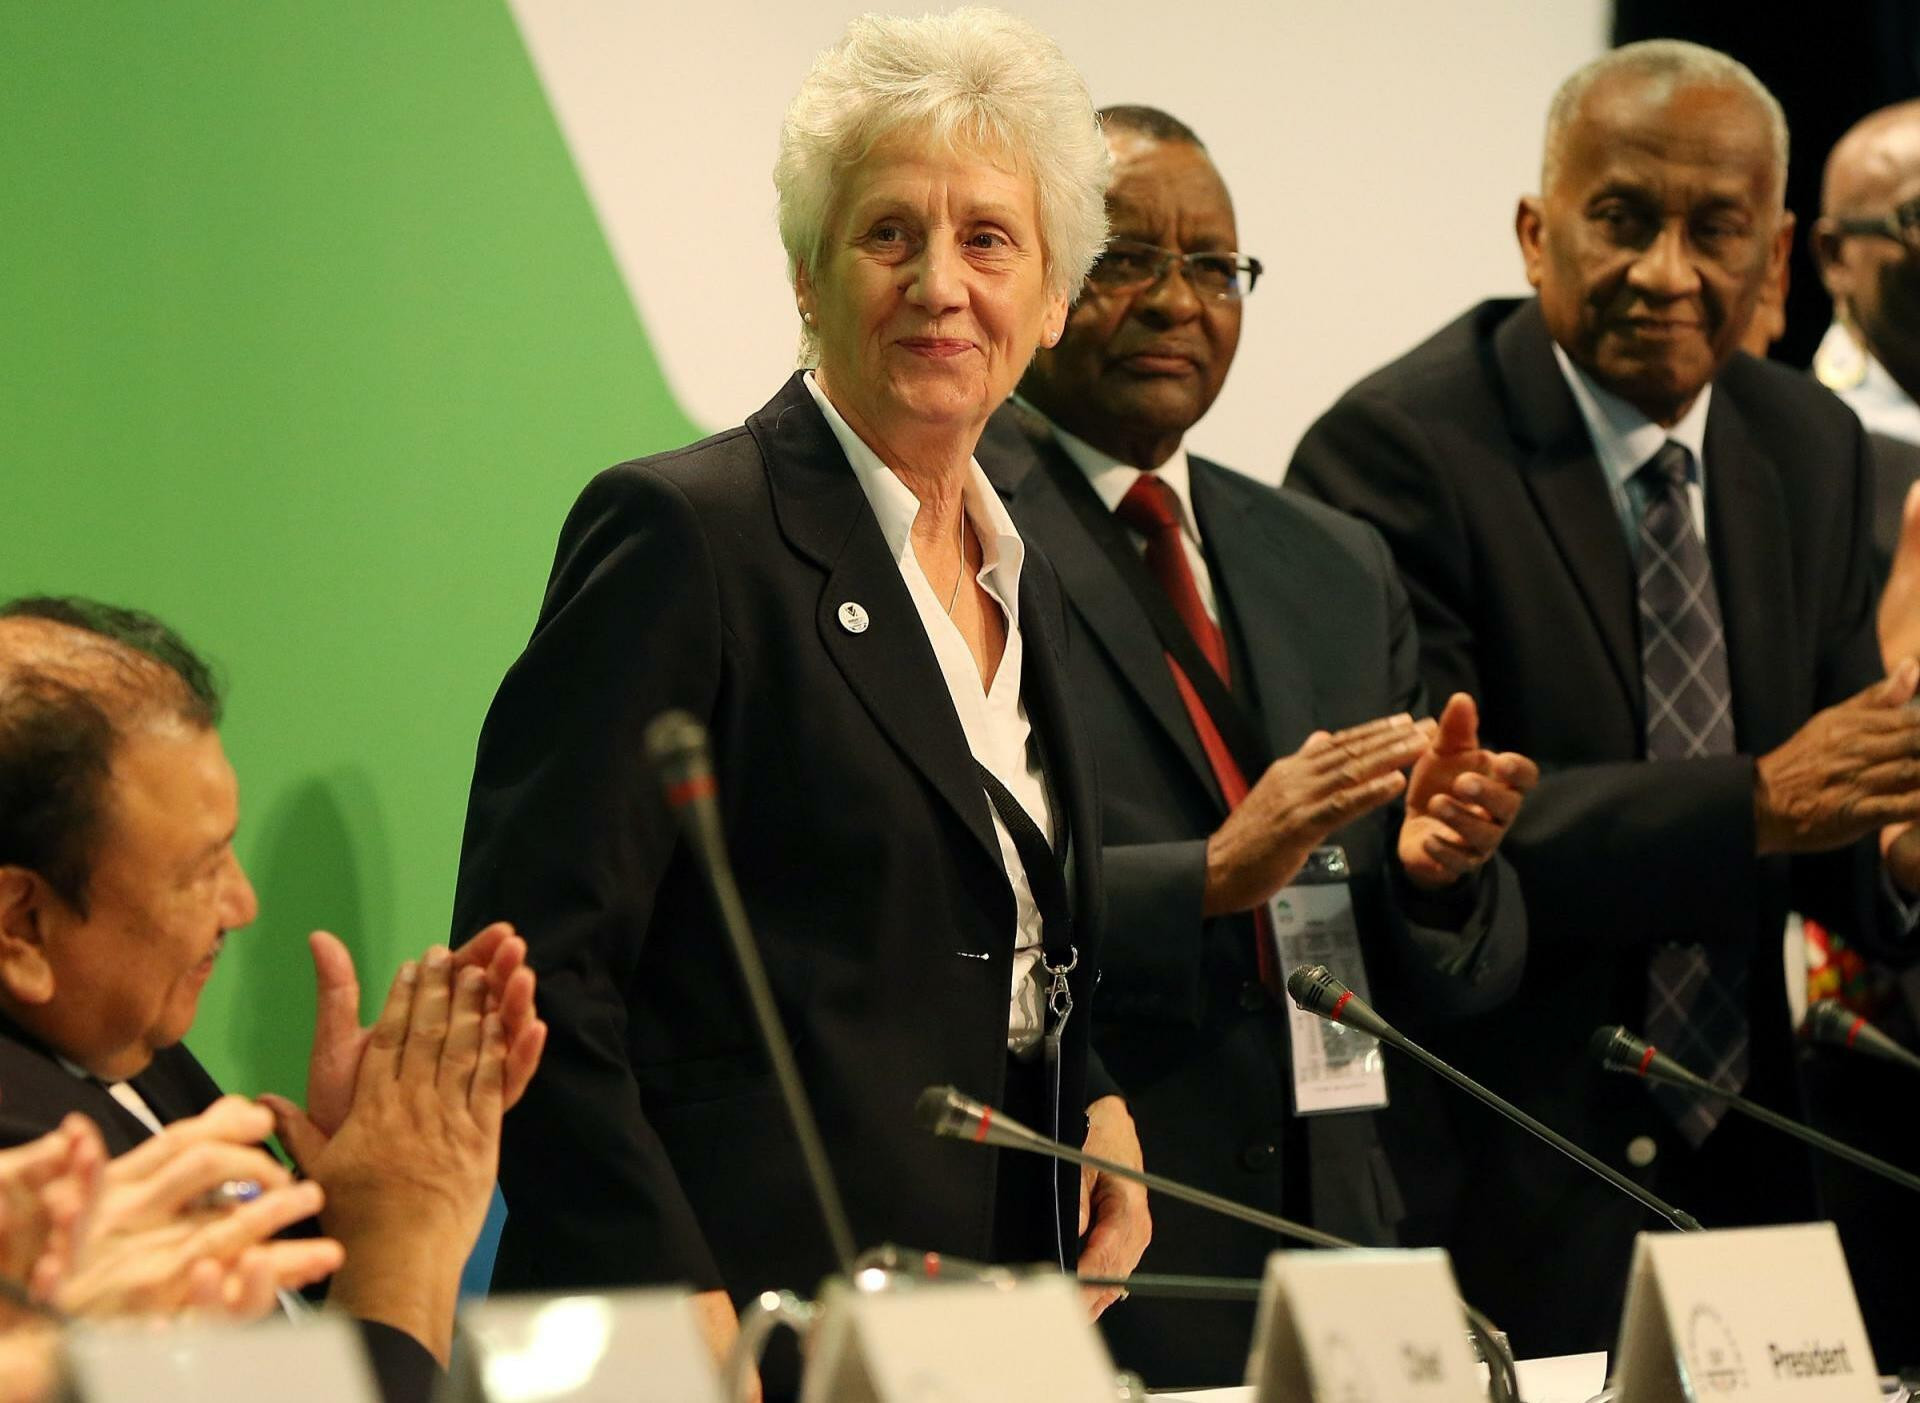 Dame Louise Martin was elected Commonwealth Games Federation President at its General Assembly in 2015 ©Getty Images